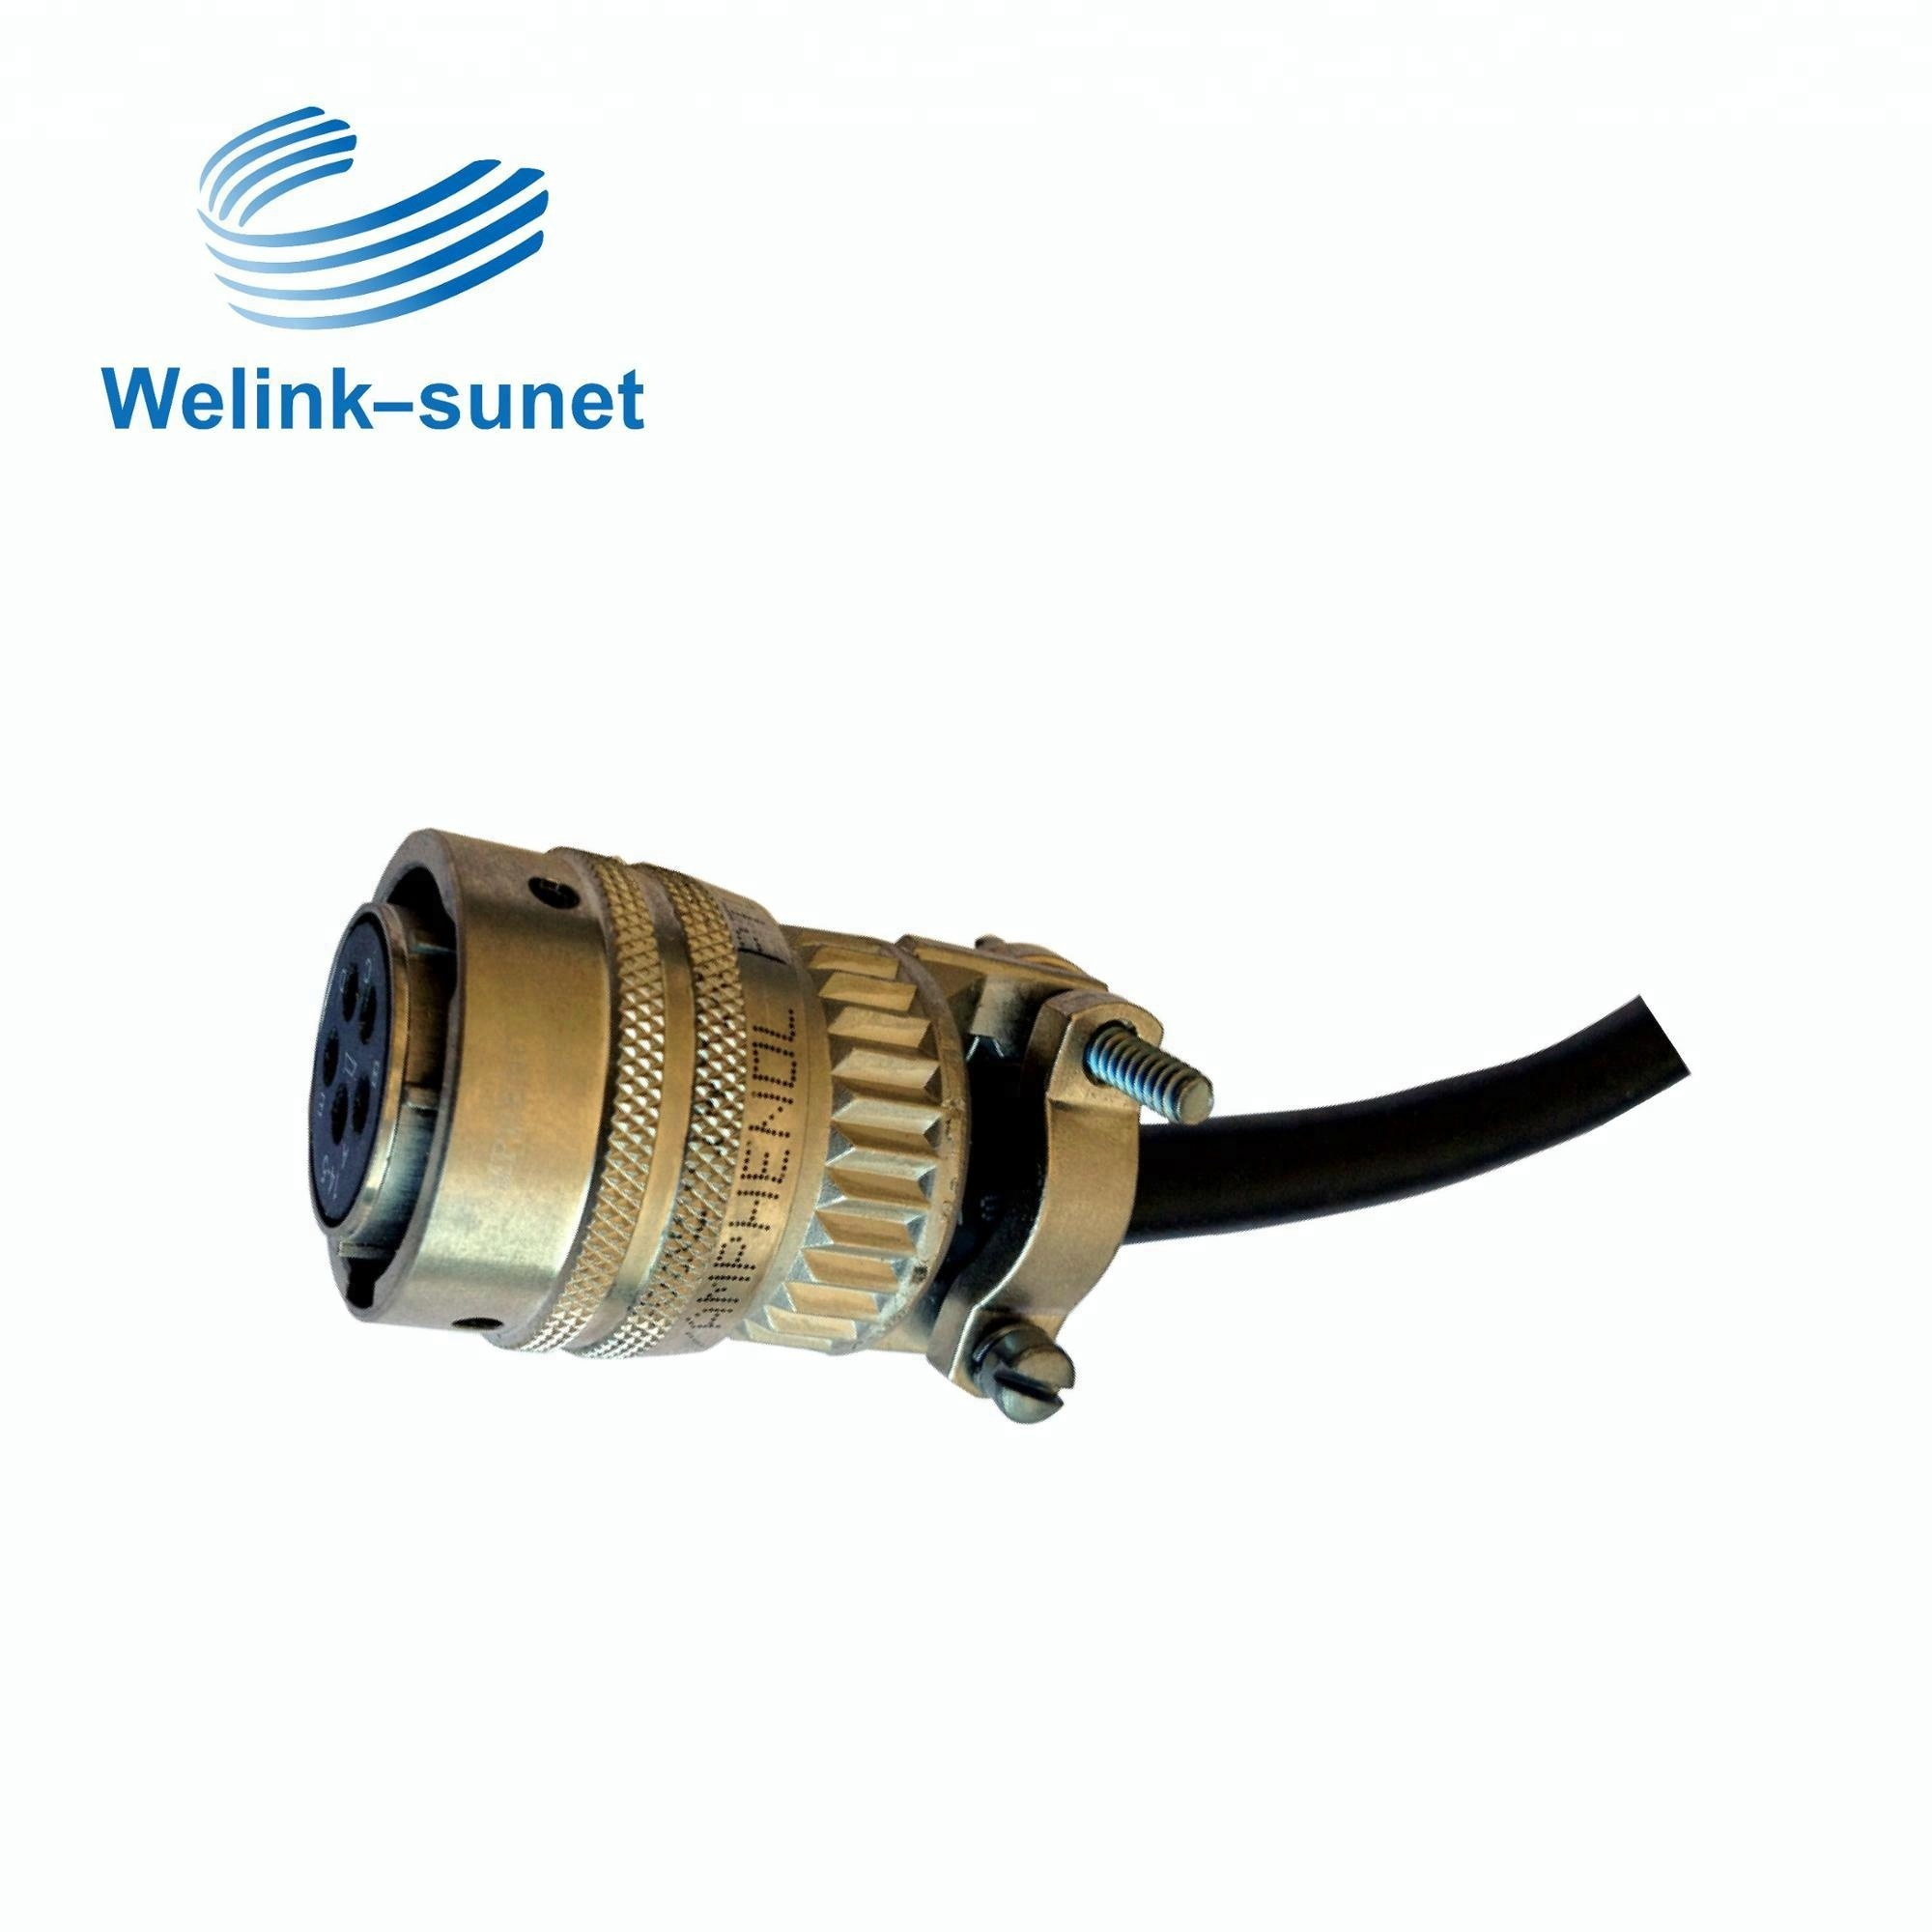 hight resolution of yeonhab yh3116f and lapp flexibility 5 2 0 25 industrial robots power wiring harness